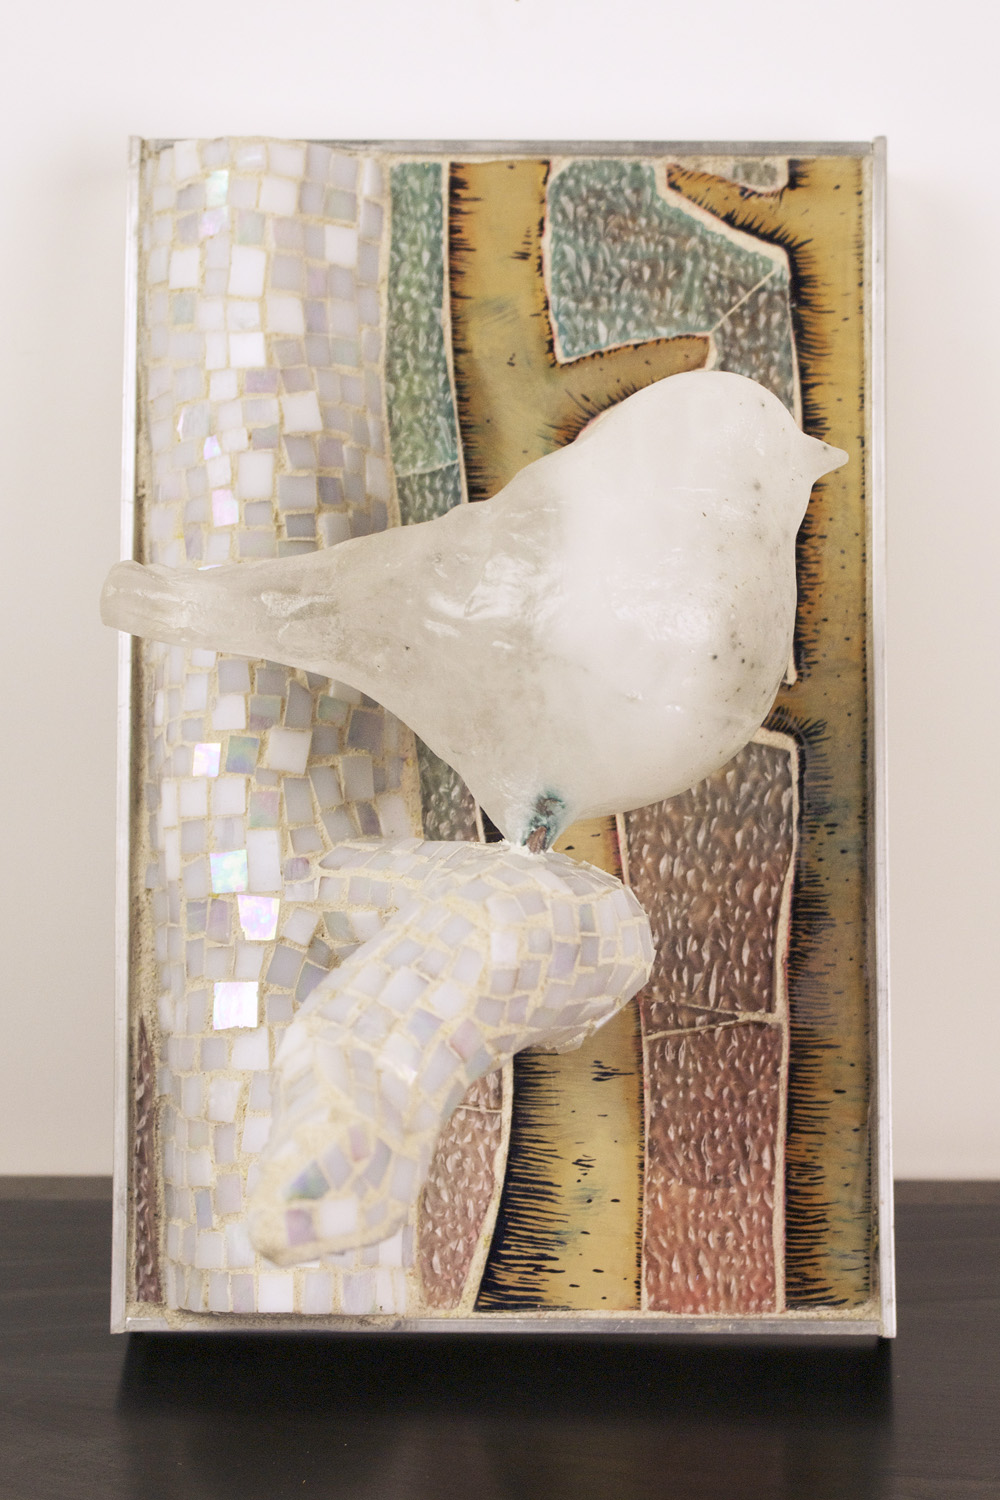 Katja Fritzsche   Back, Window , 2010  Cast glass bird, reverse oil painting on glass, mosaic